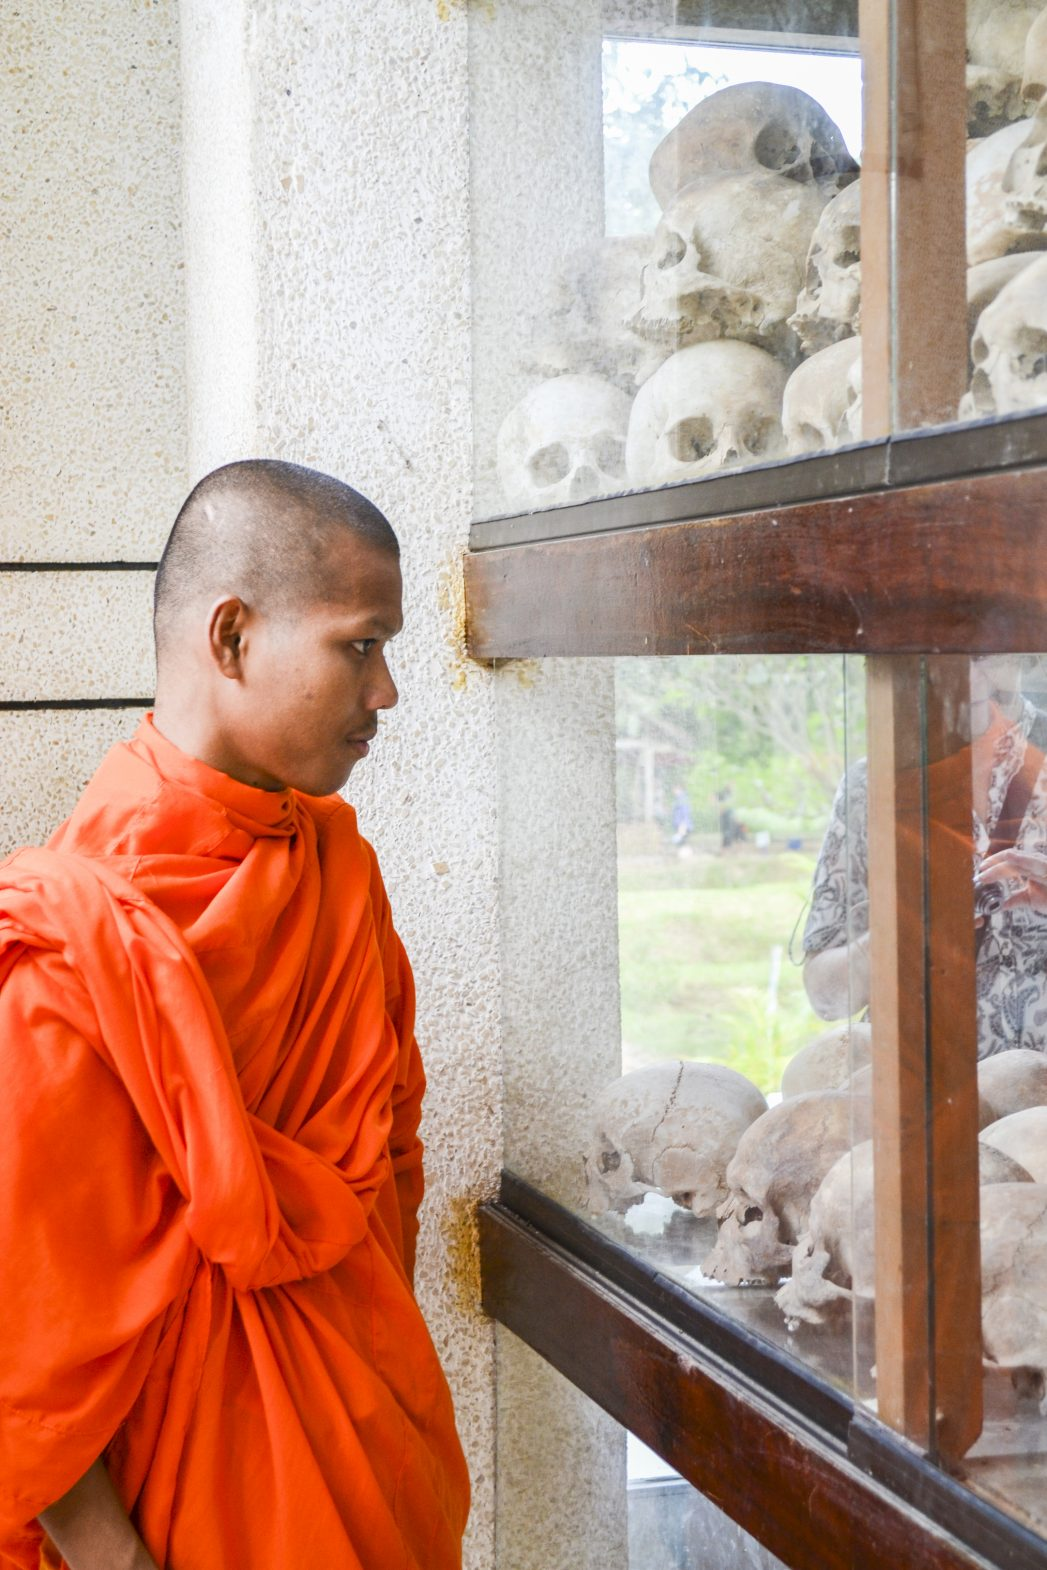 A young monk looks at the skulls and bones inside the memorial stupa at Choeung Ek outside Cambodia's capital Phnom Penh.